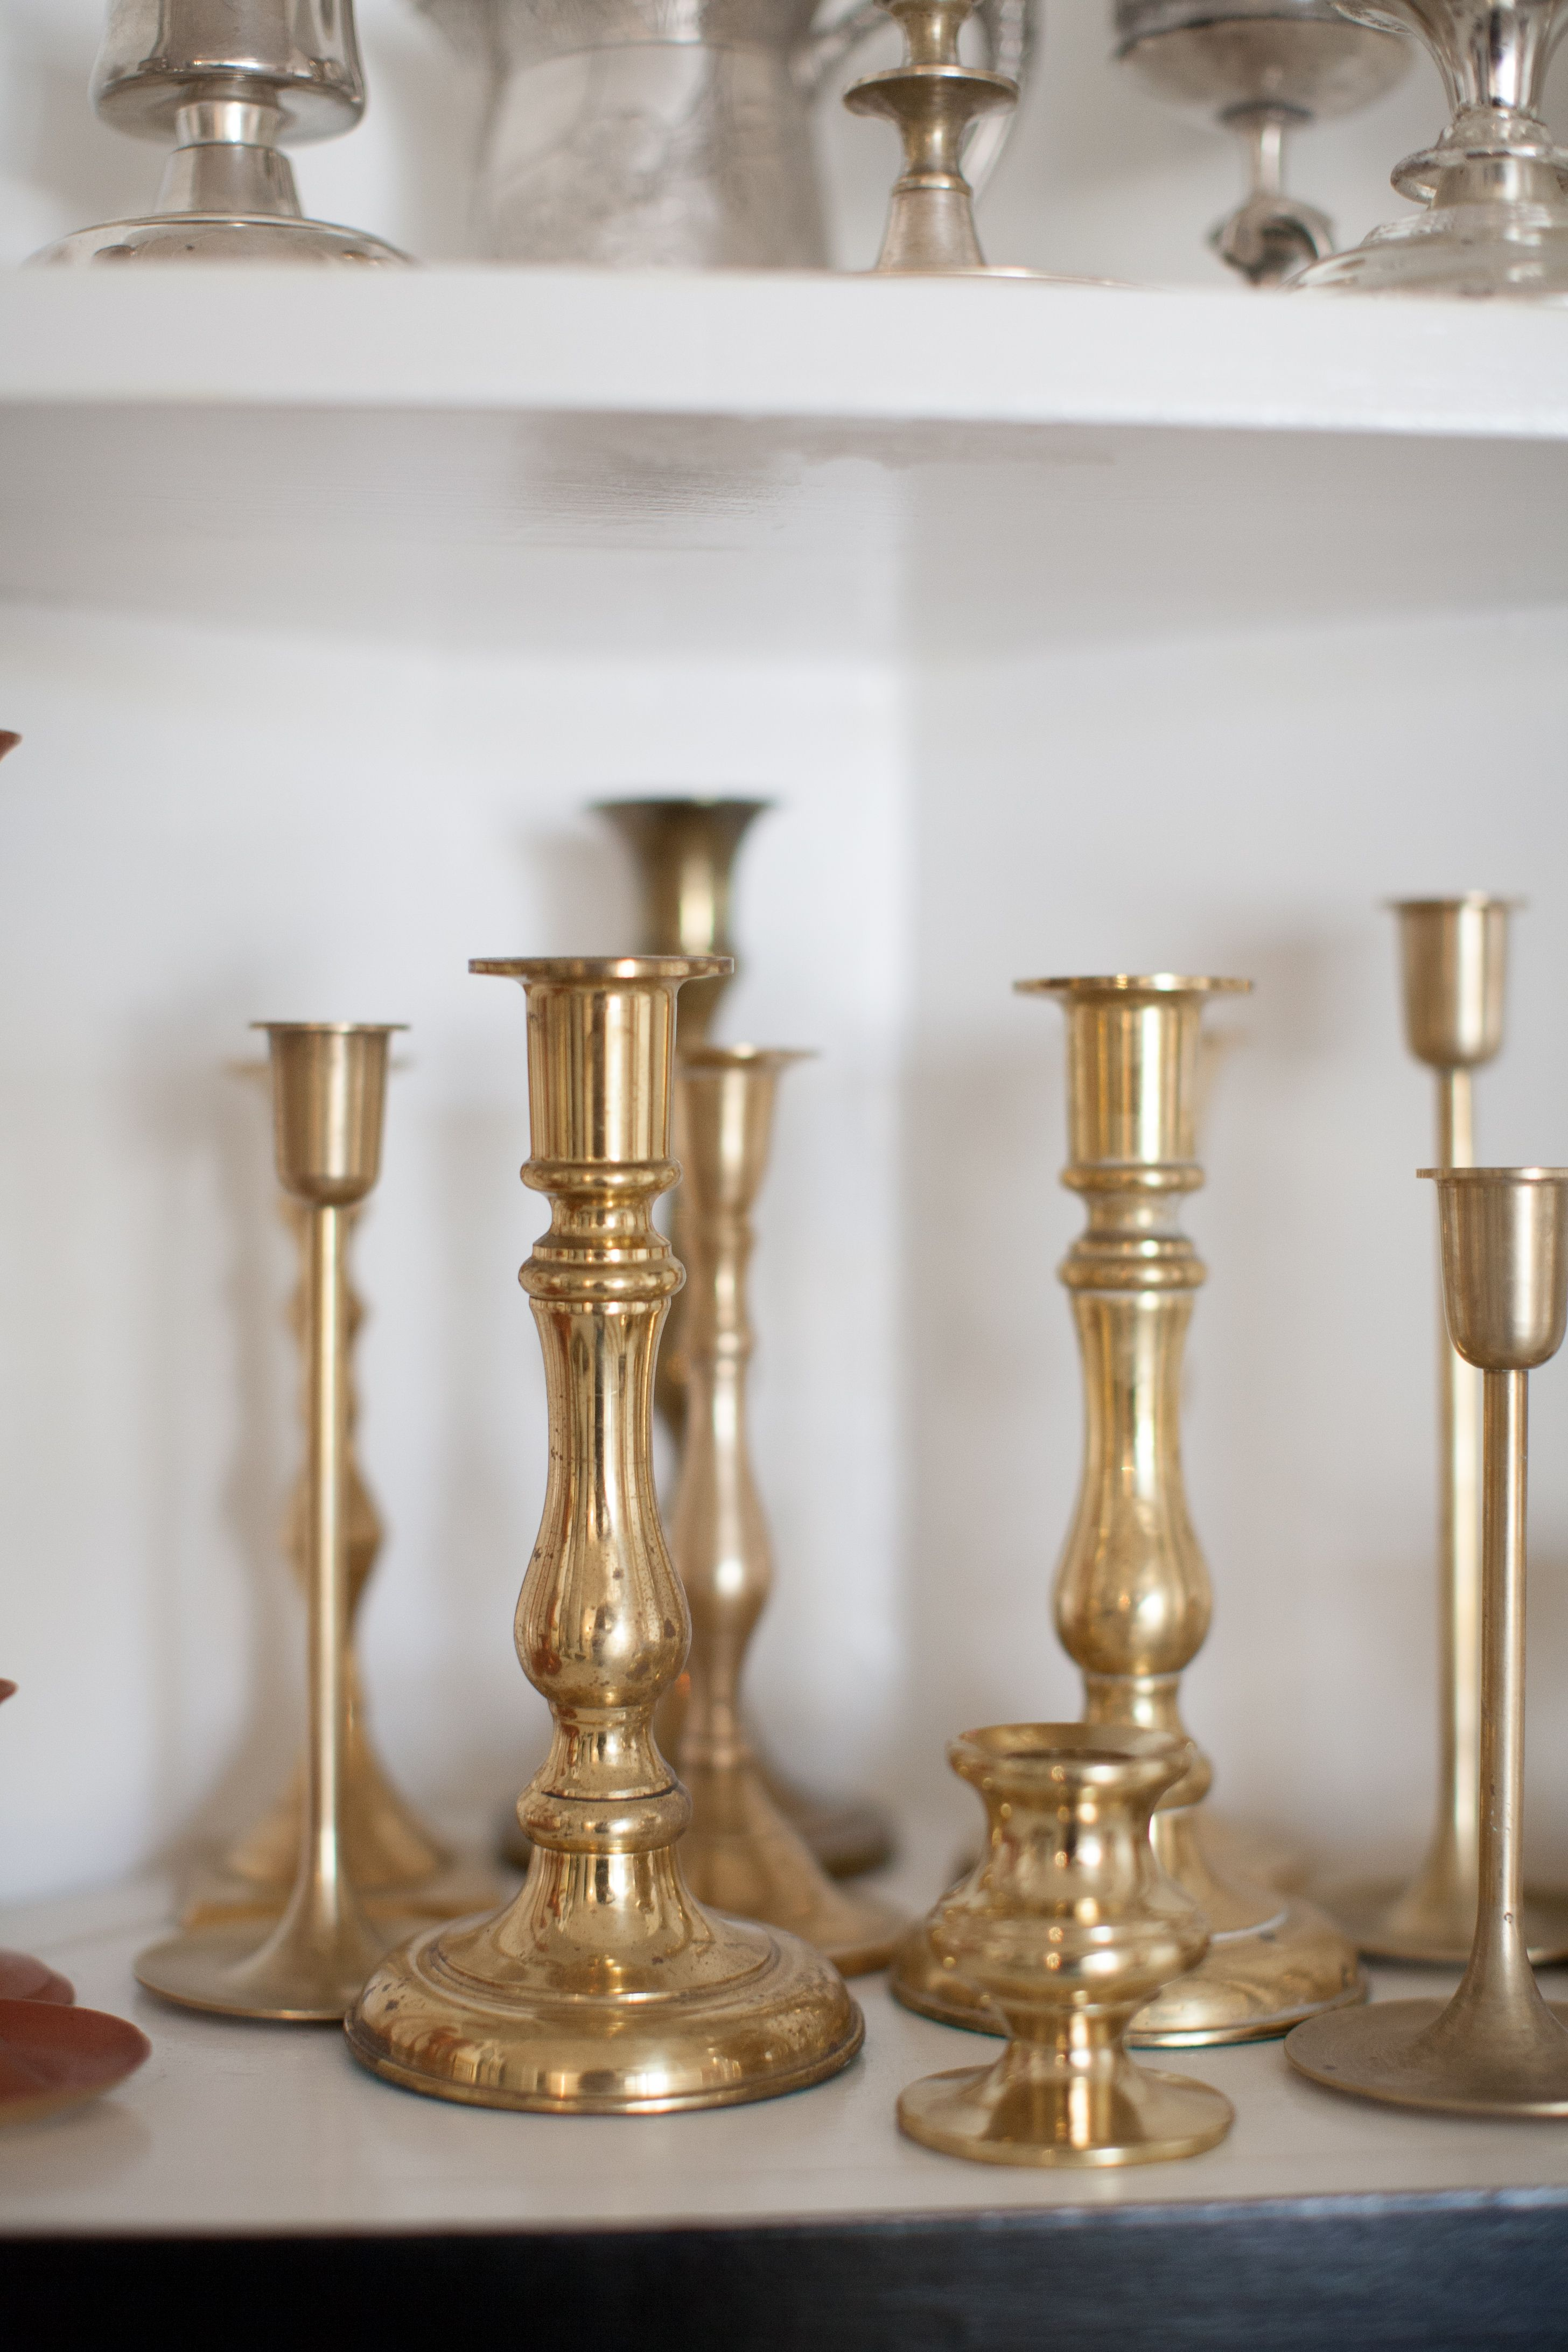 Dish wish studio tour gold candlesticks and props for rent gold dish wish studio tour gold candlesticks and props for rent gold striped floor solutioingenieria Gallery